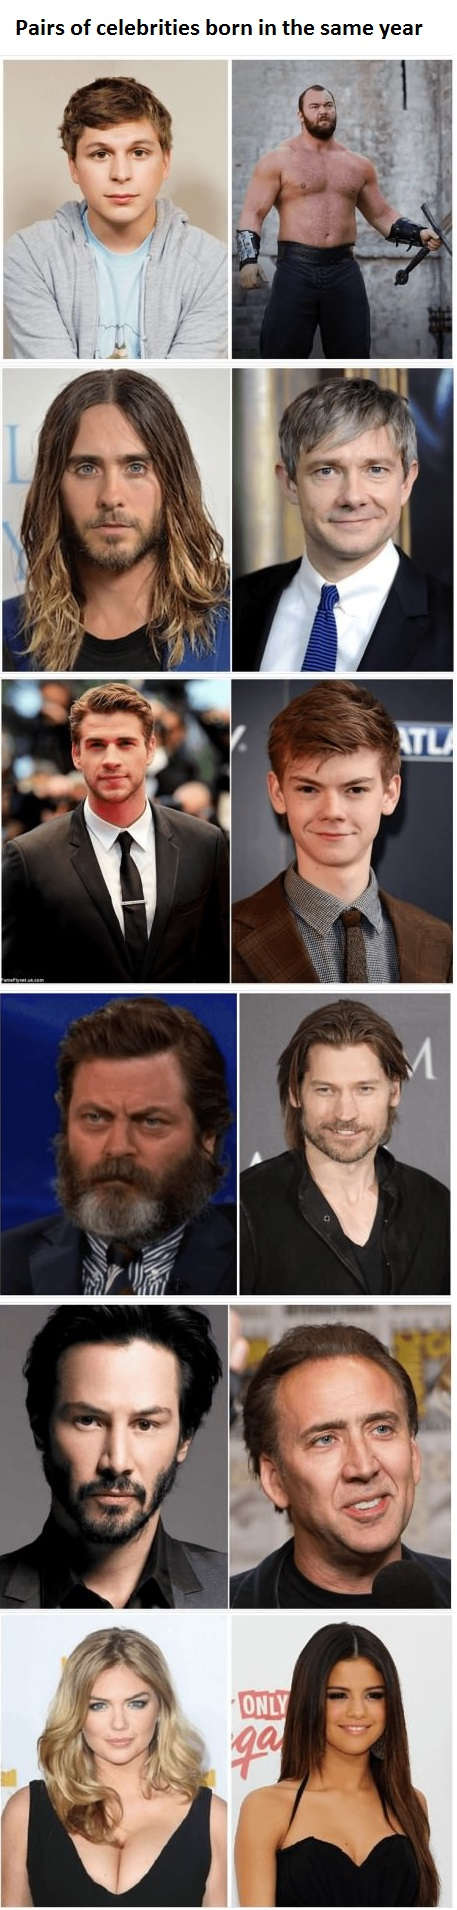 celebs-age-same-year-compilation